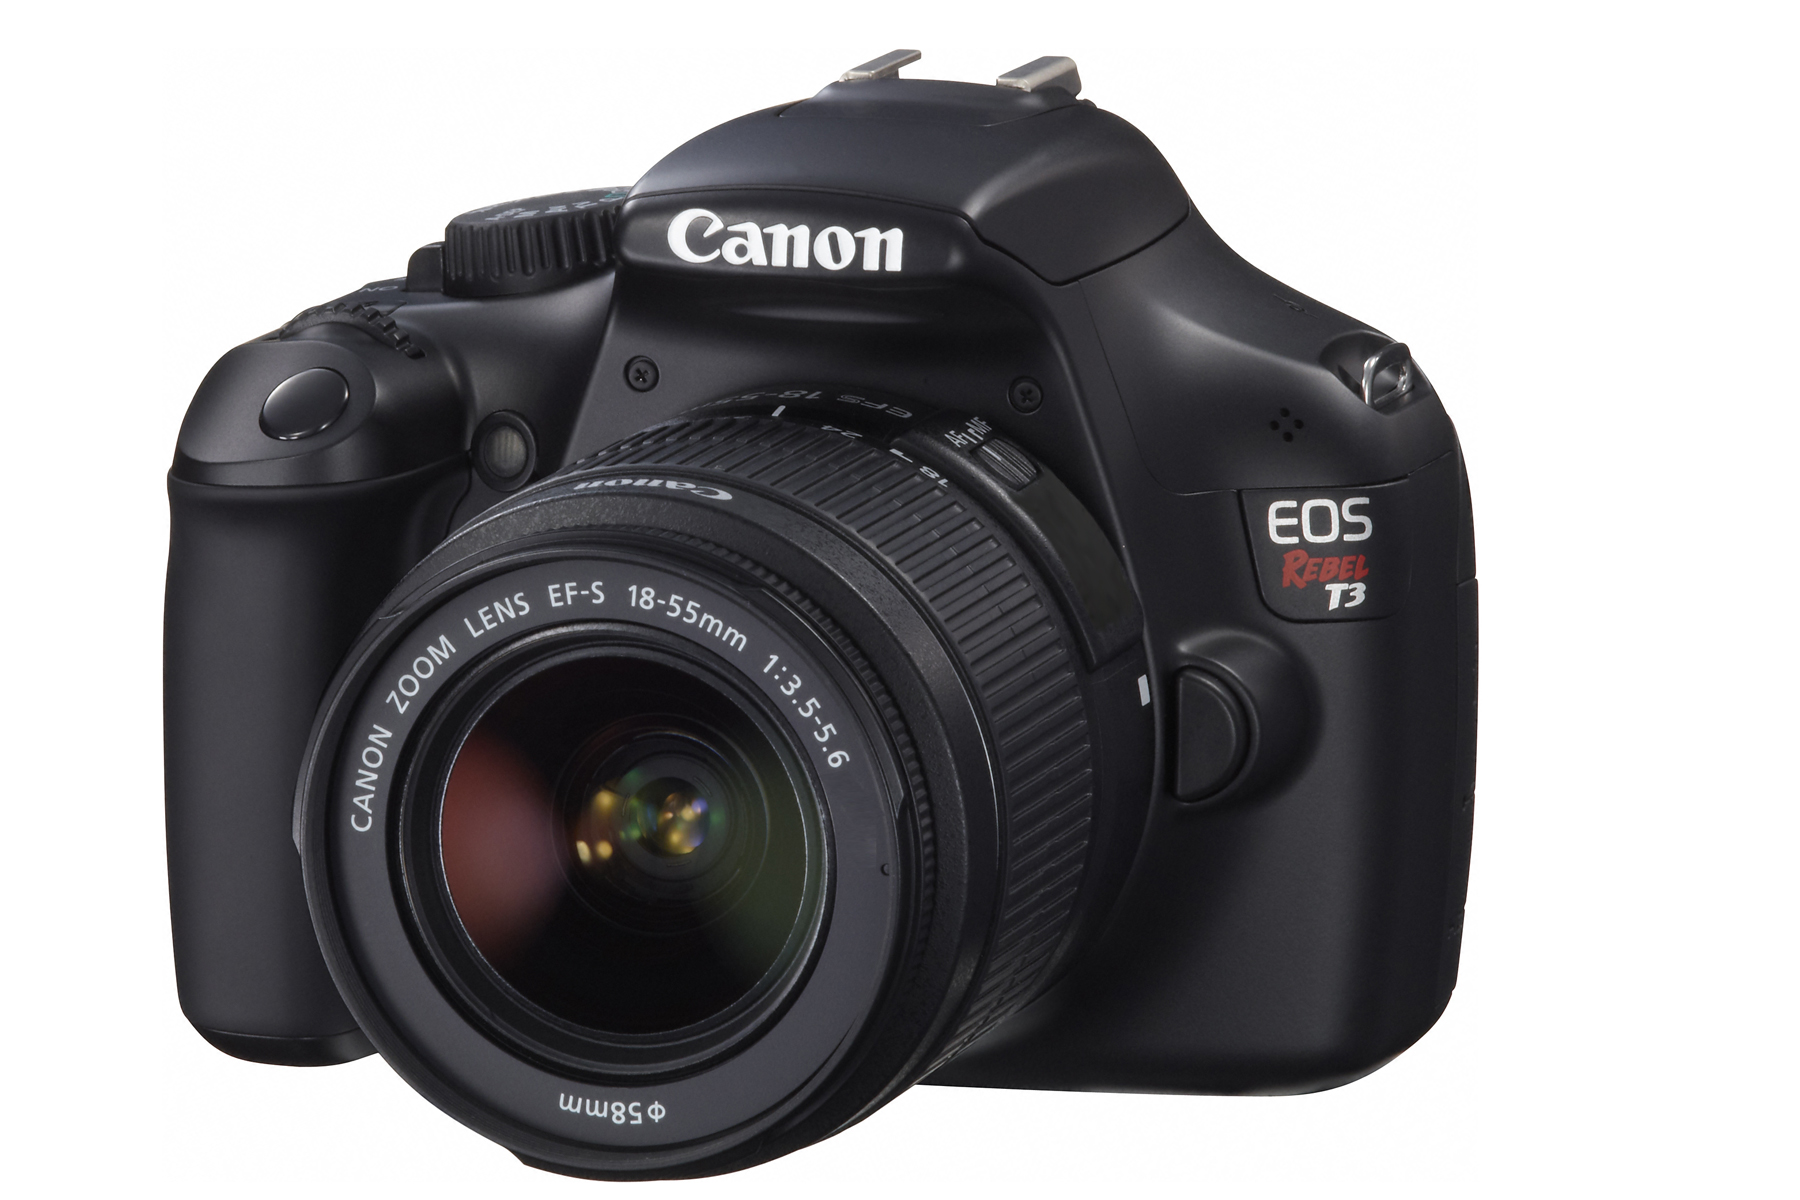 Canon Eos Rebel T3 Camera True Begins - Sears